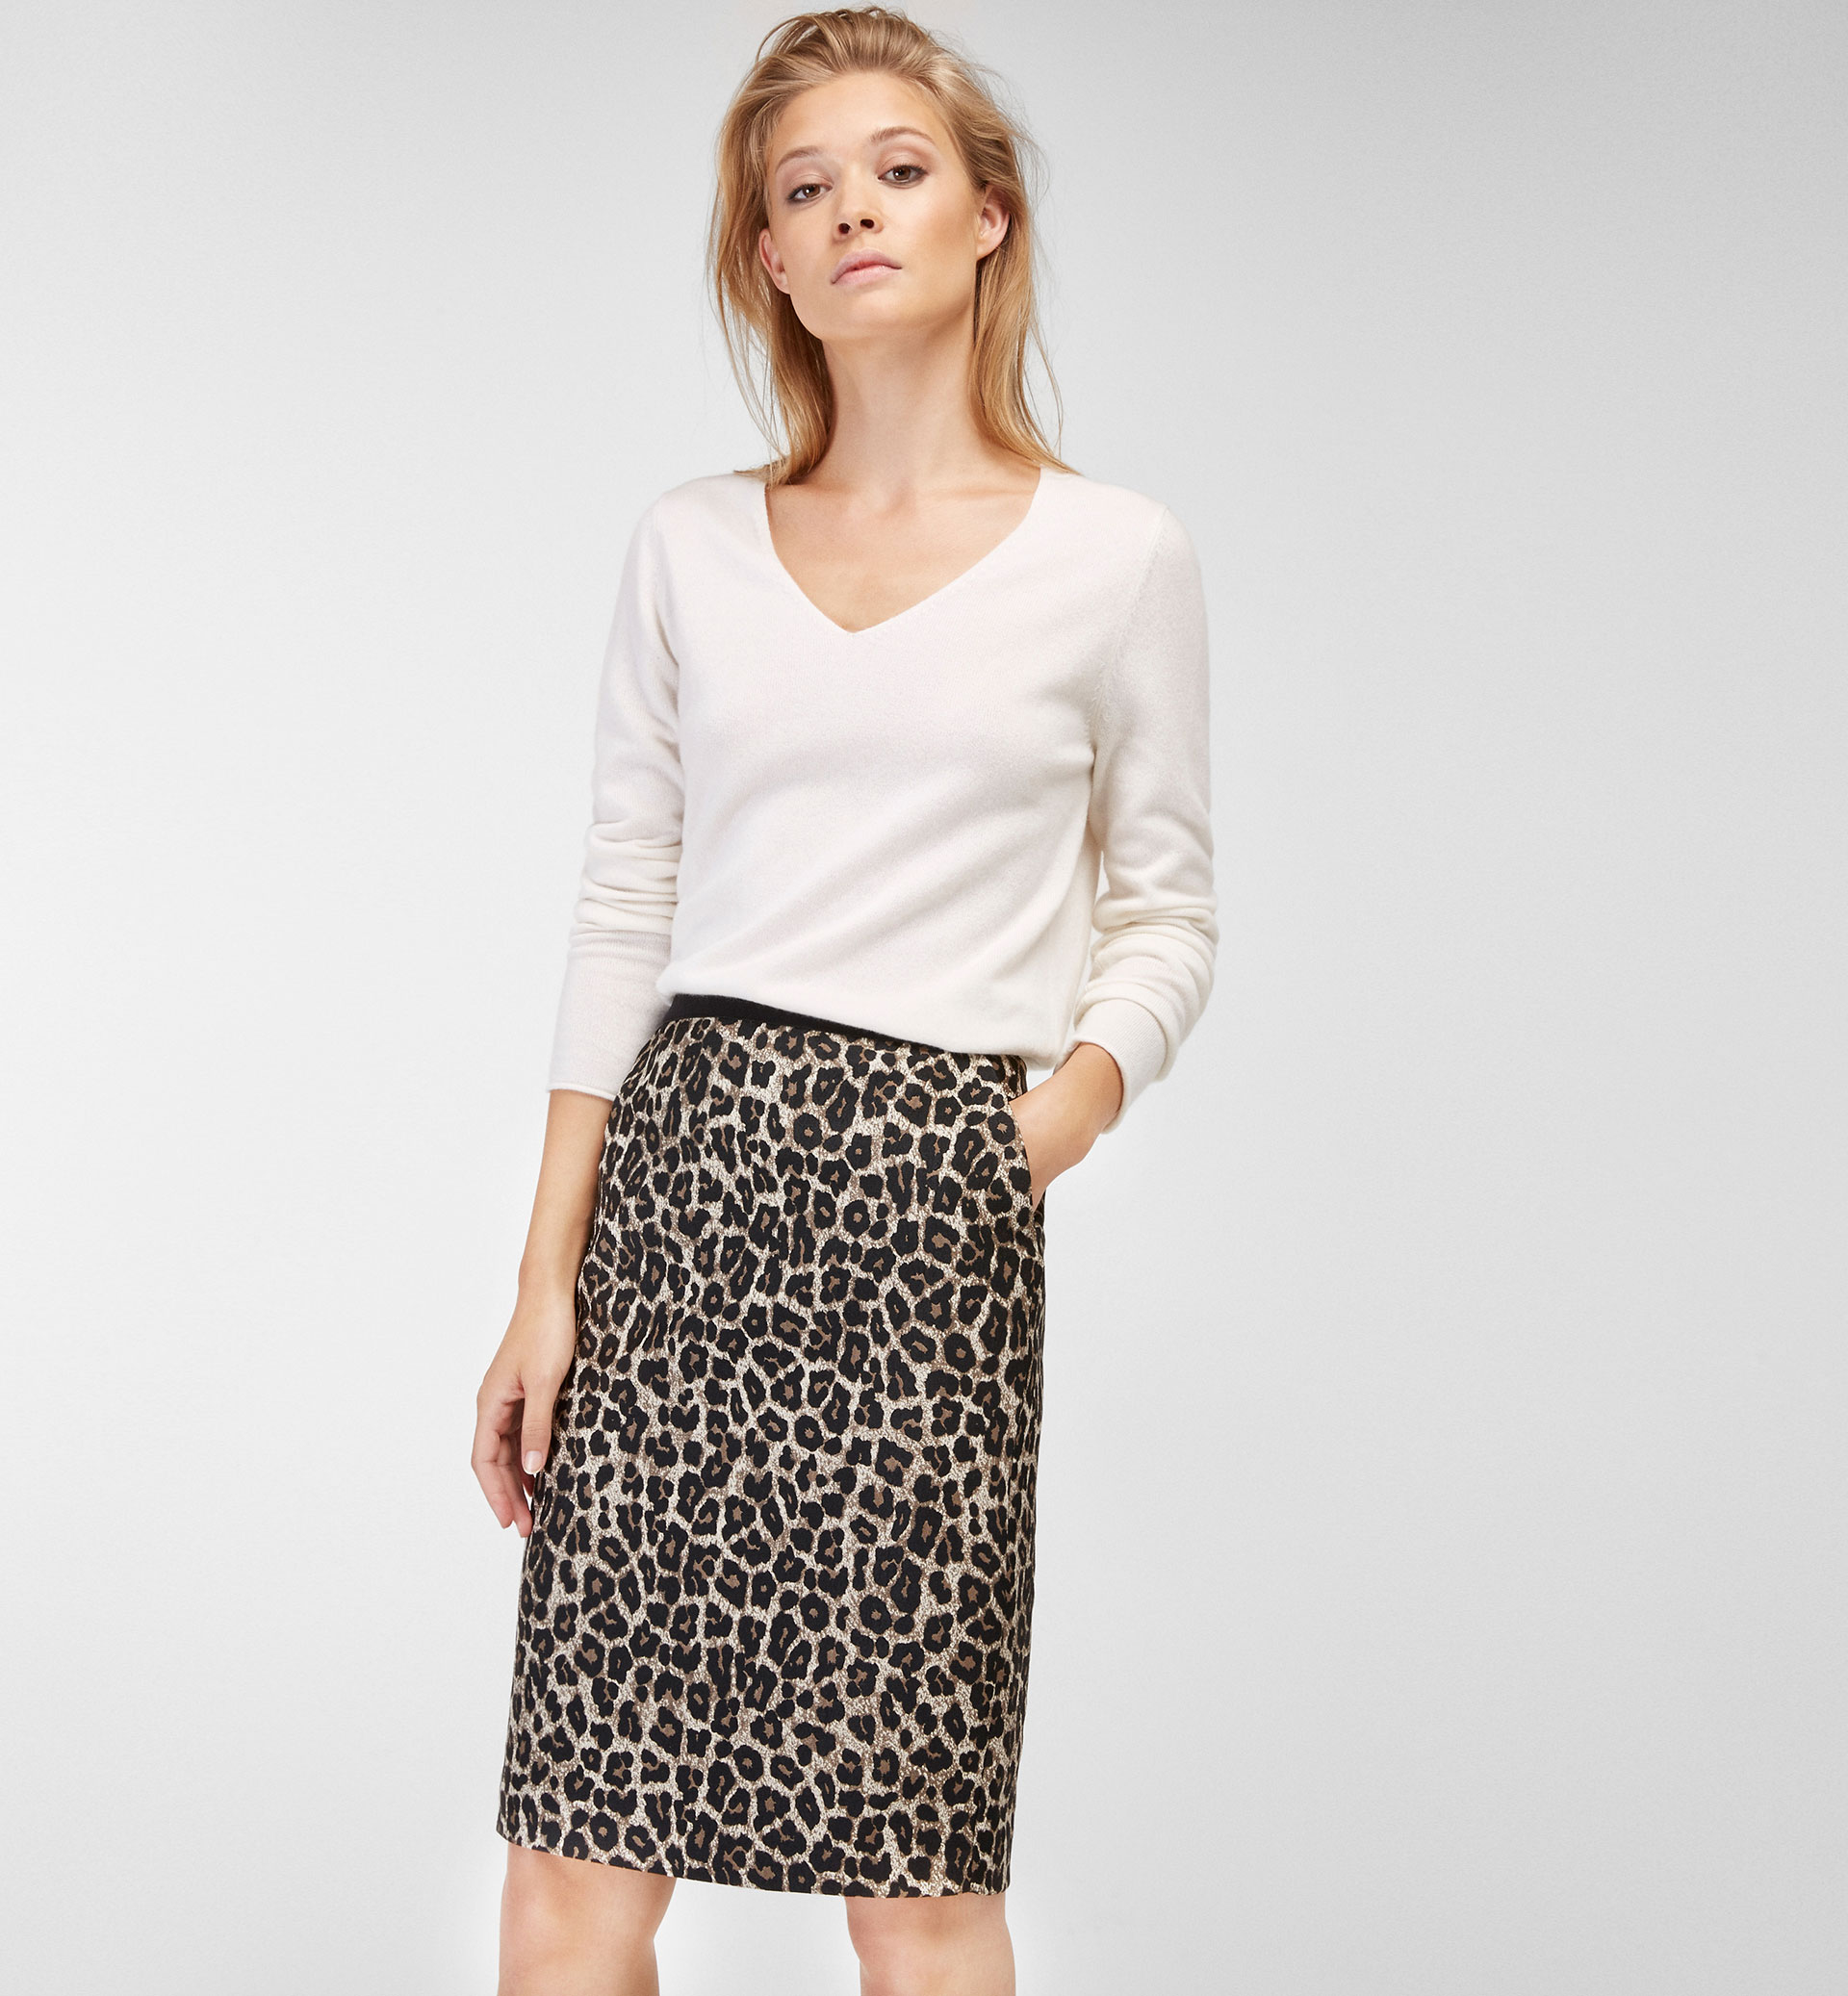 ANIMAL PRINT JACQUARD SKIRT